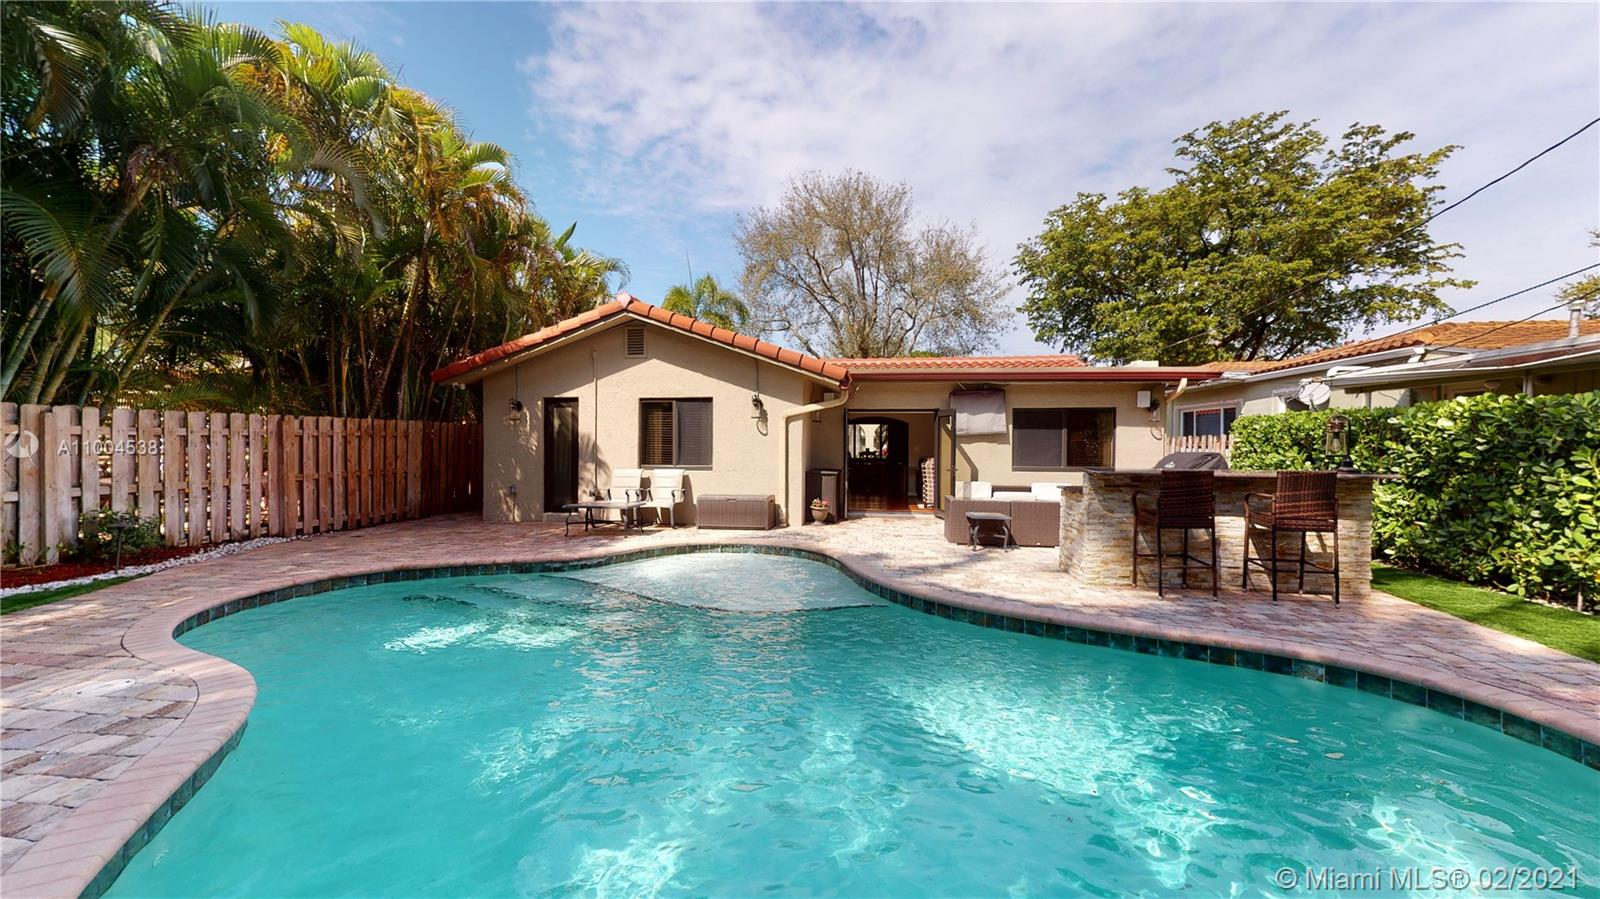 This Rio Vista Home is an absolute Jewel! The open plan layout exudes space and comfort. The sitting room with electric fireplace has French Doors leading out to the Heated Sparkling Pool, Outdoor Kitchen and Hot Tub, which you may enjoy year round. The large Master Bedroom has a Spacious Built-in Walk-in Closet and Updated Cabana Bathroom. The Guest Bedrooms are Roomy and Comfy. The home has so much to offer; 1 Car Garage, Impact Windows and Doors, Roof 4yrs, AC 3yrs, Tankless Water Heater, Newer Appliances, Generator plus more! Grab your your coffee and head out to Las Olas, Beaches, Airport and Cruise Port in mere minutes! Enjoy the South Florida Lifestyle Today!